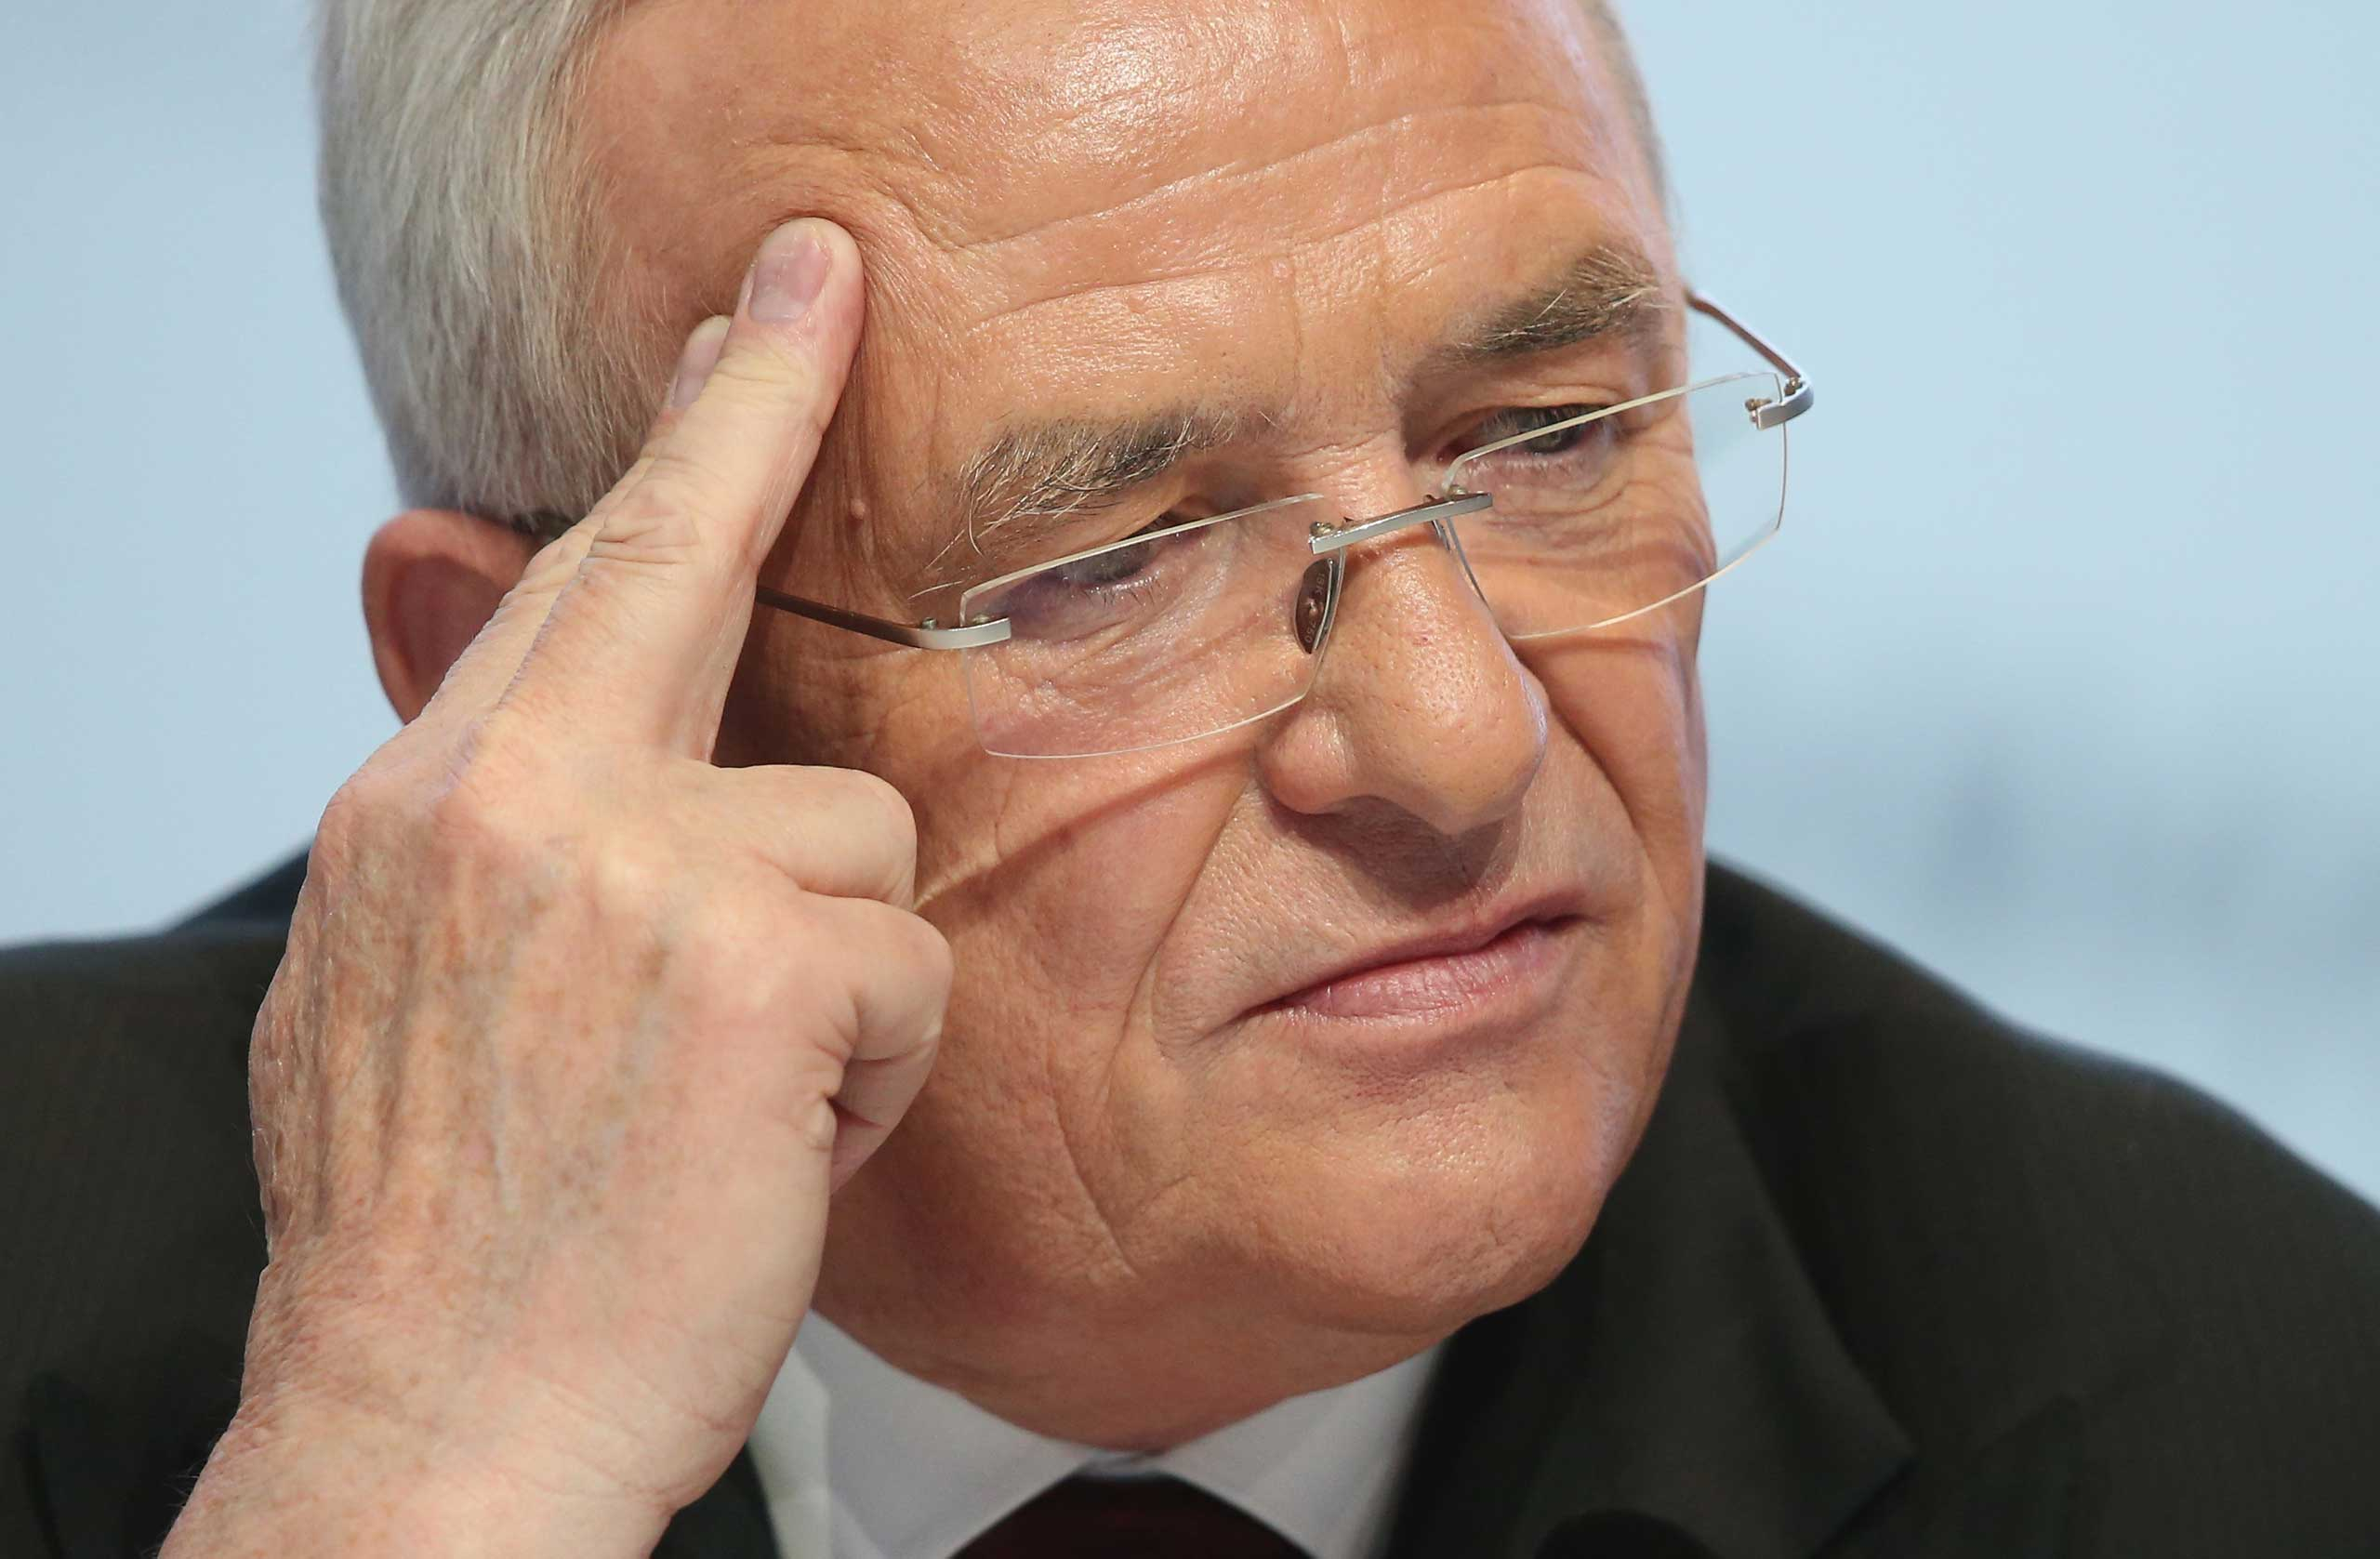 Volkswagen CEO Martin Winterkorn attends the company's annual press conference on March 13, 2014 in Wolfsburg, Germany.